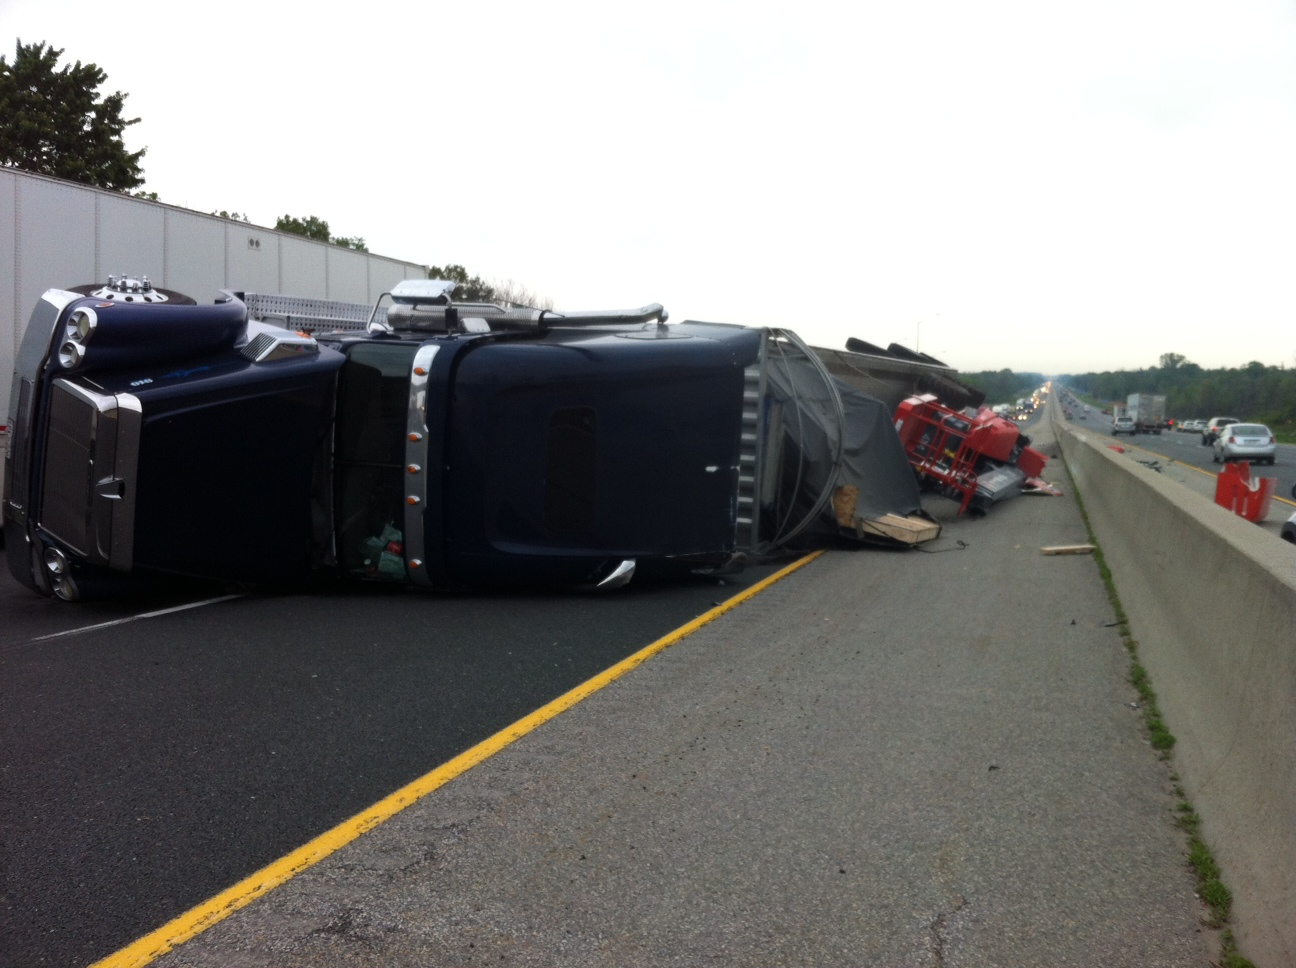 A transport truck is flipped over in the westbound lanes of Hwy, 401 near Dorchester on June 8, 2014. (Photo by Bob Becken)